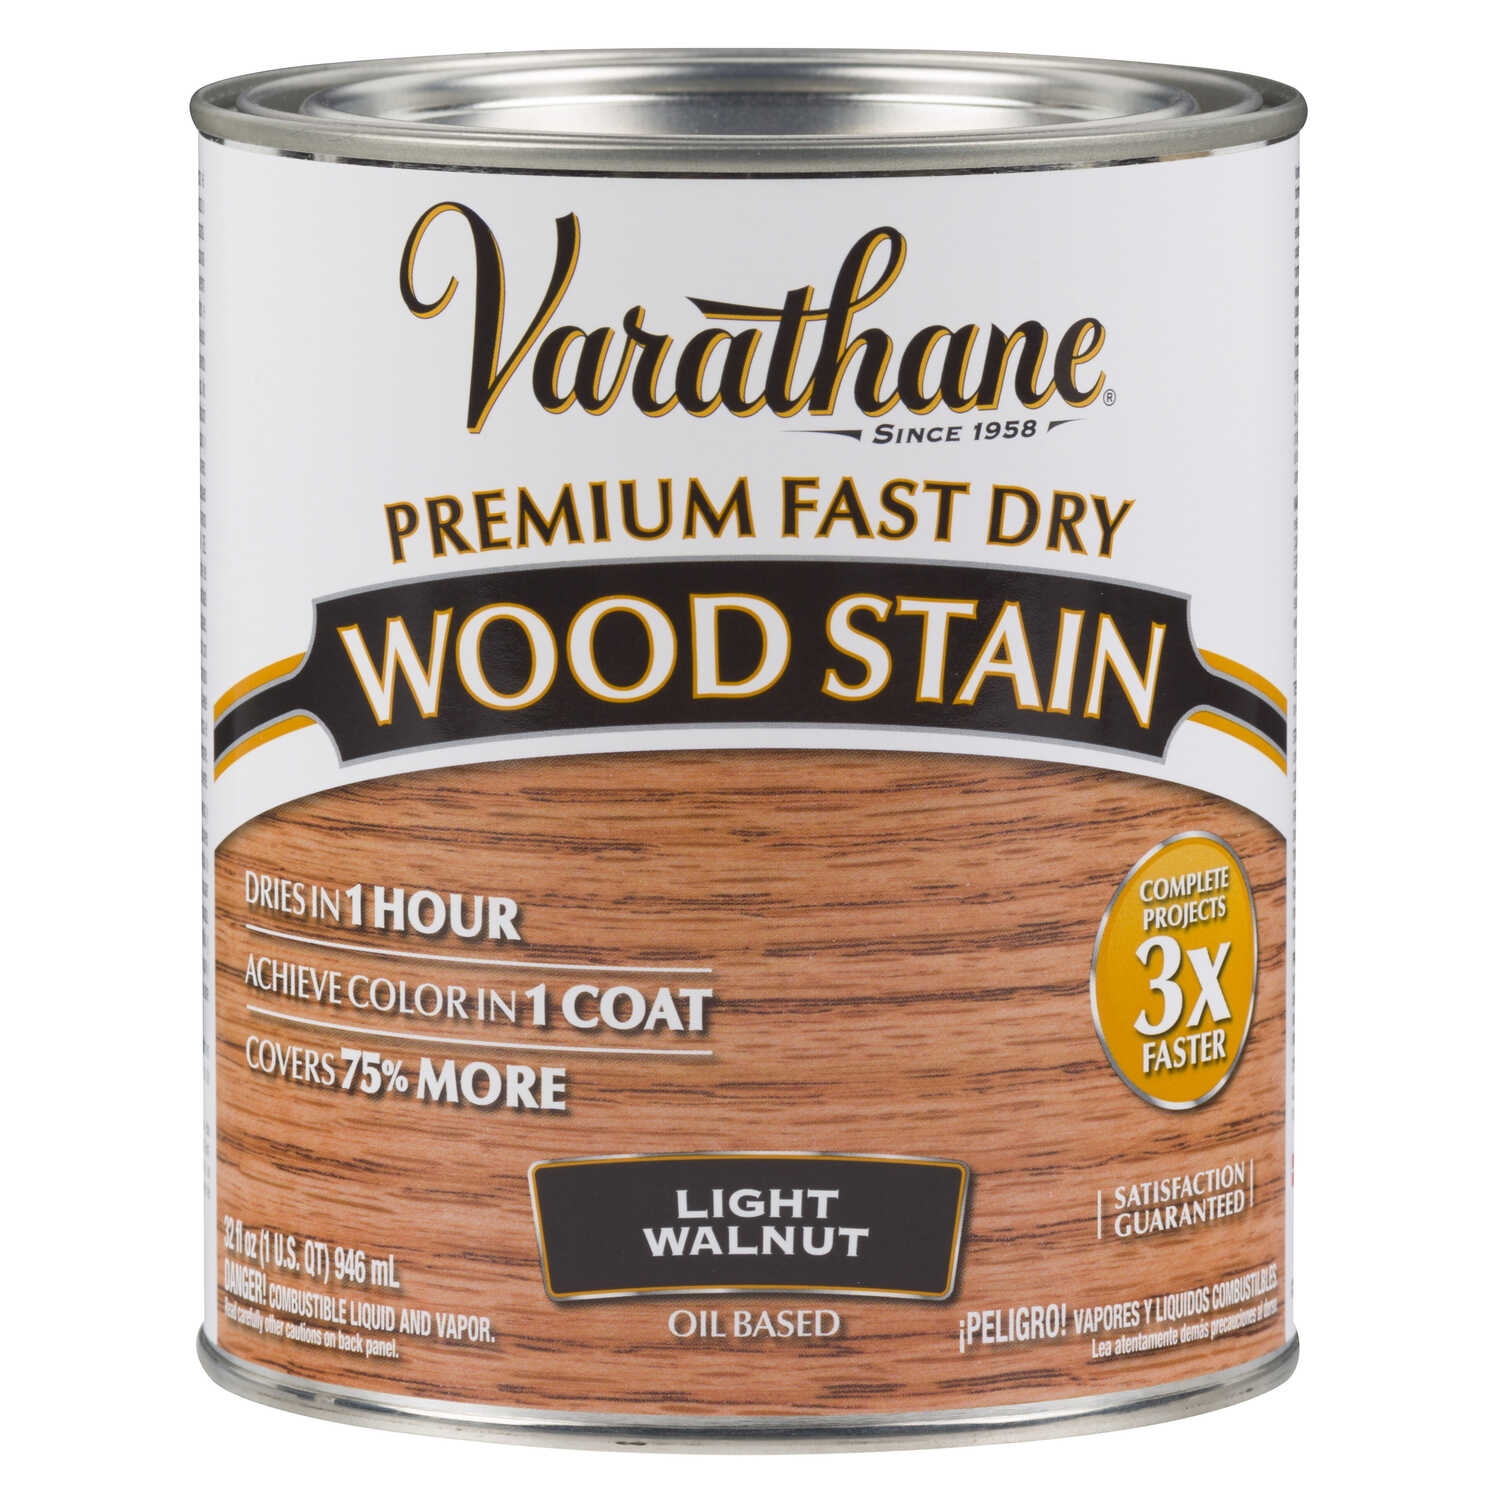 Varathane  Premium Fast Dry  Semi-Transparent  Light Walnut  Wood Stain  1 qt.